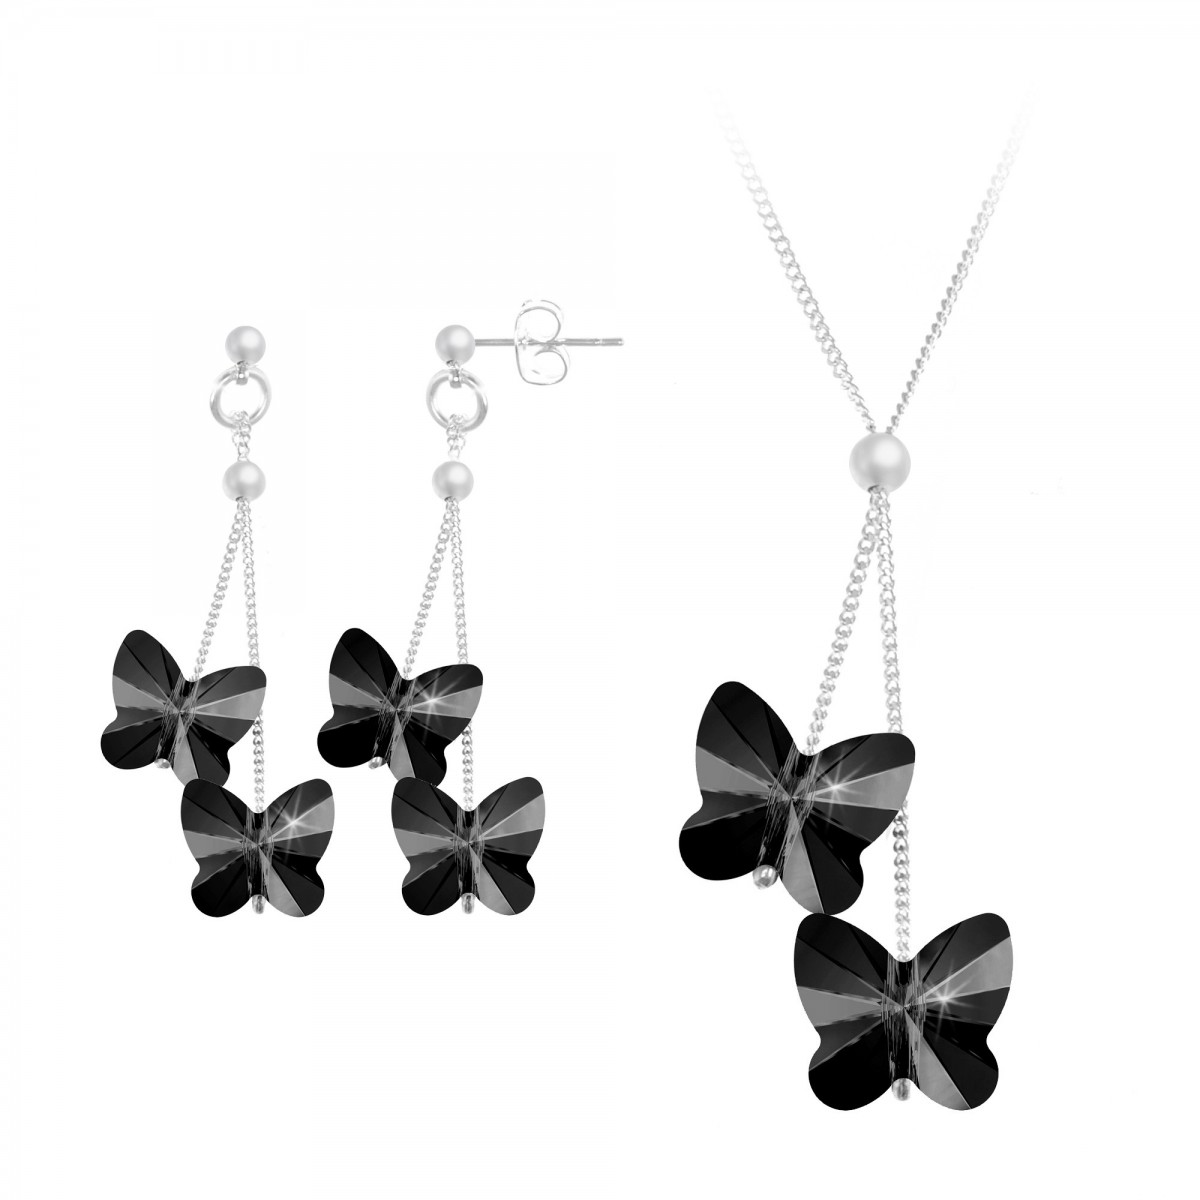 Parure collier et boucles d'oreilles papillons silver night So Charm made with Crystal from Swarovski